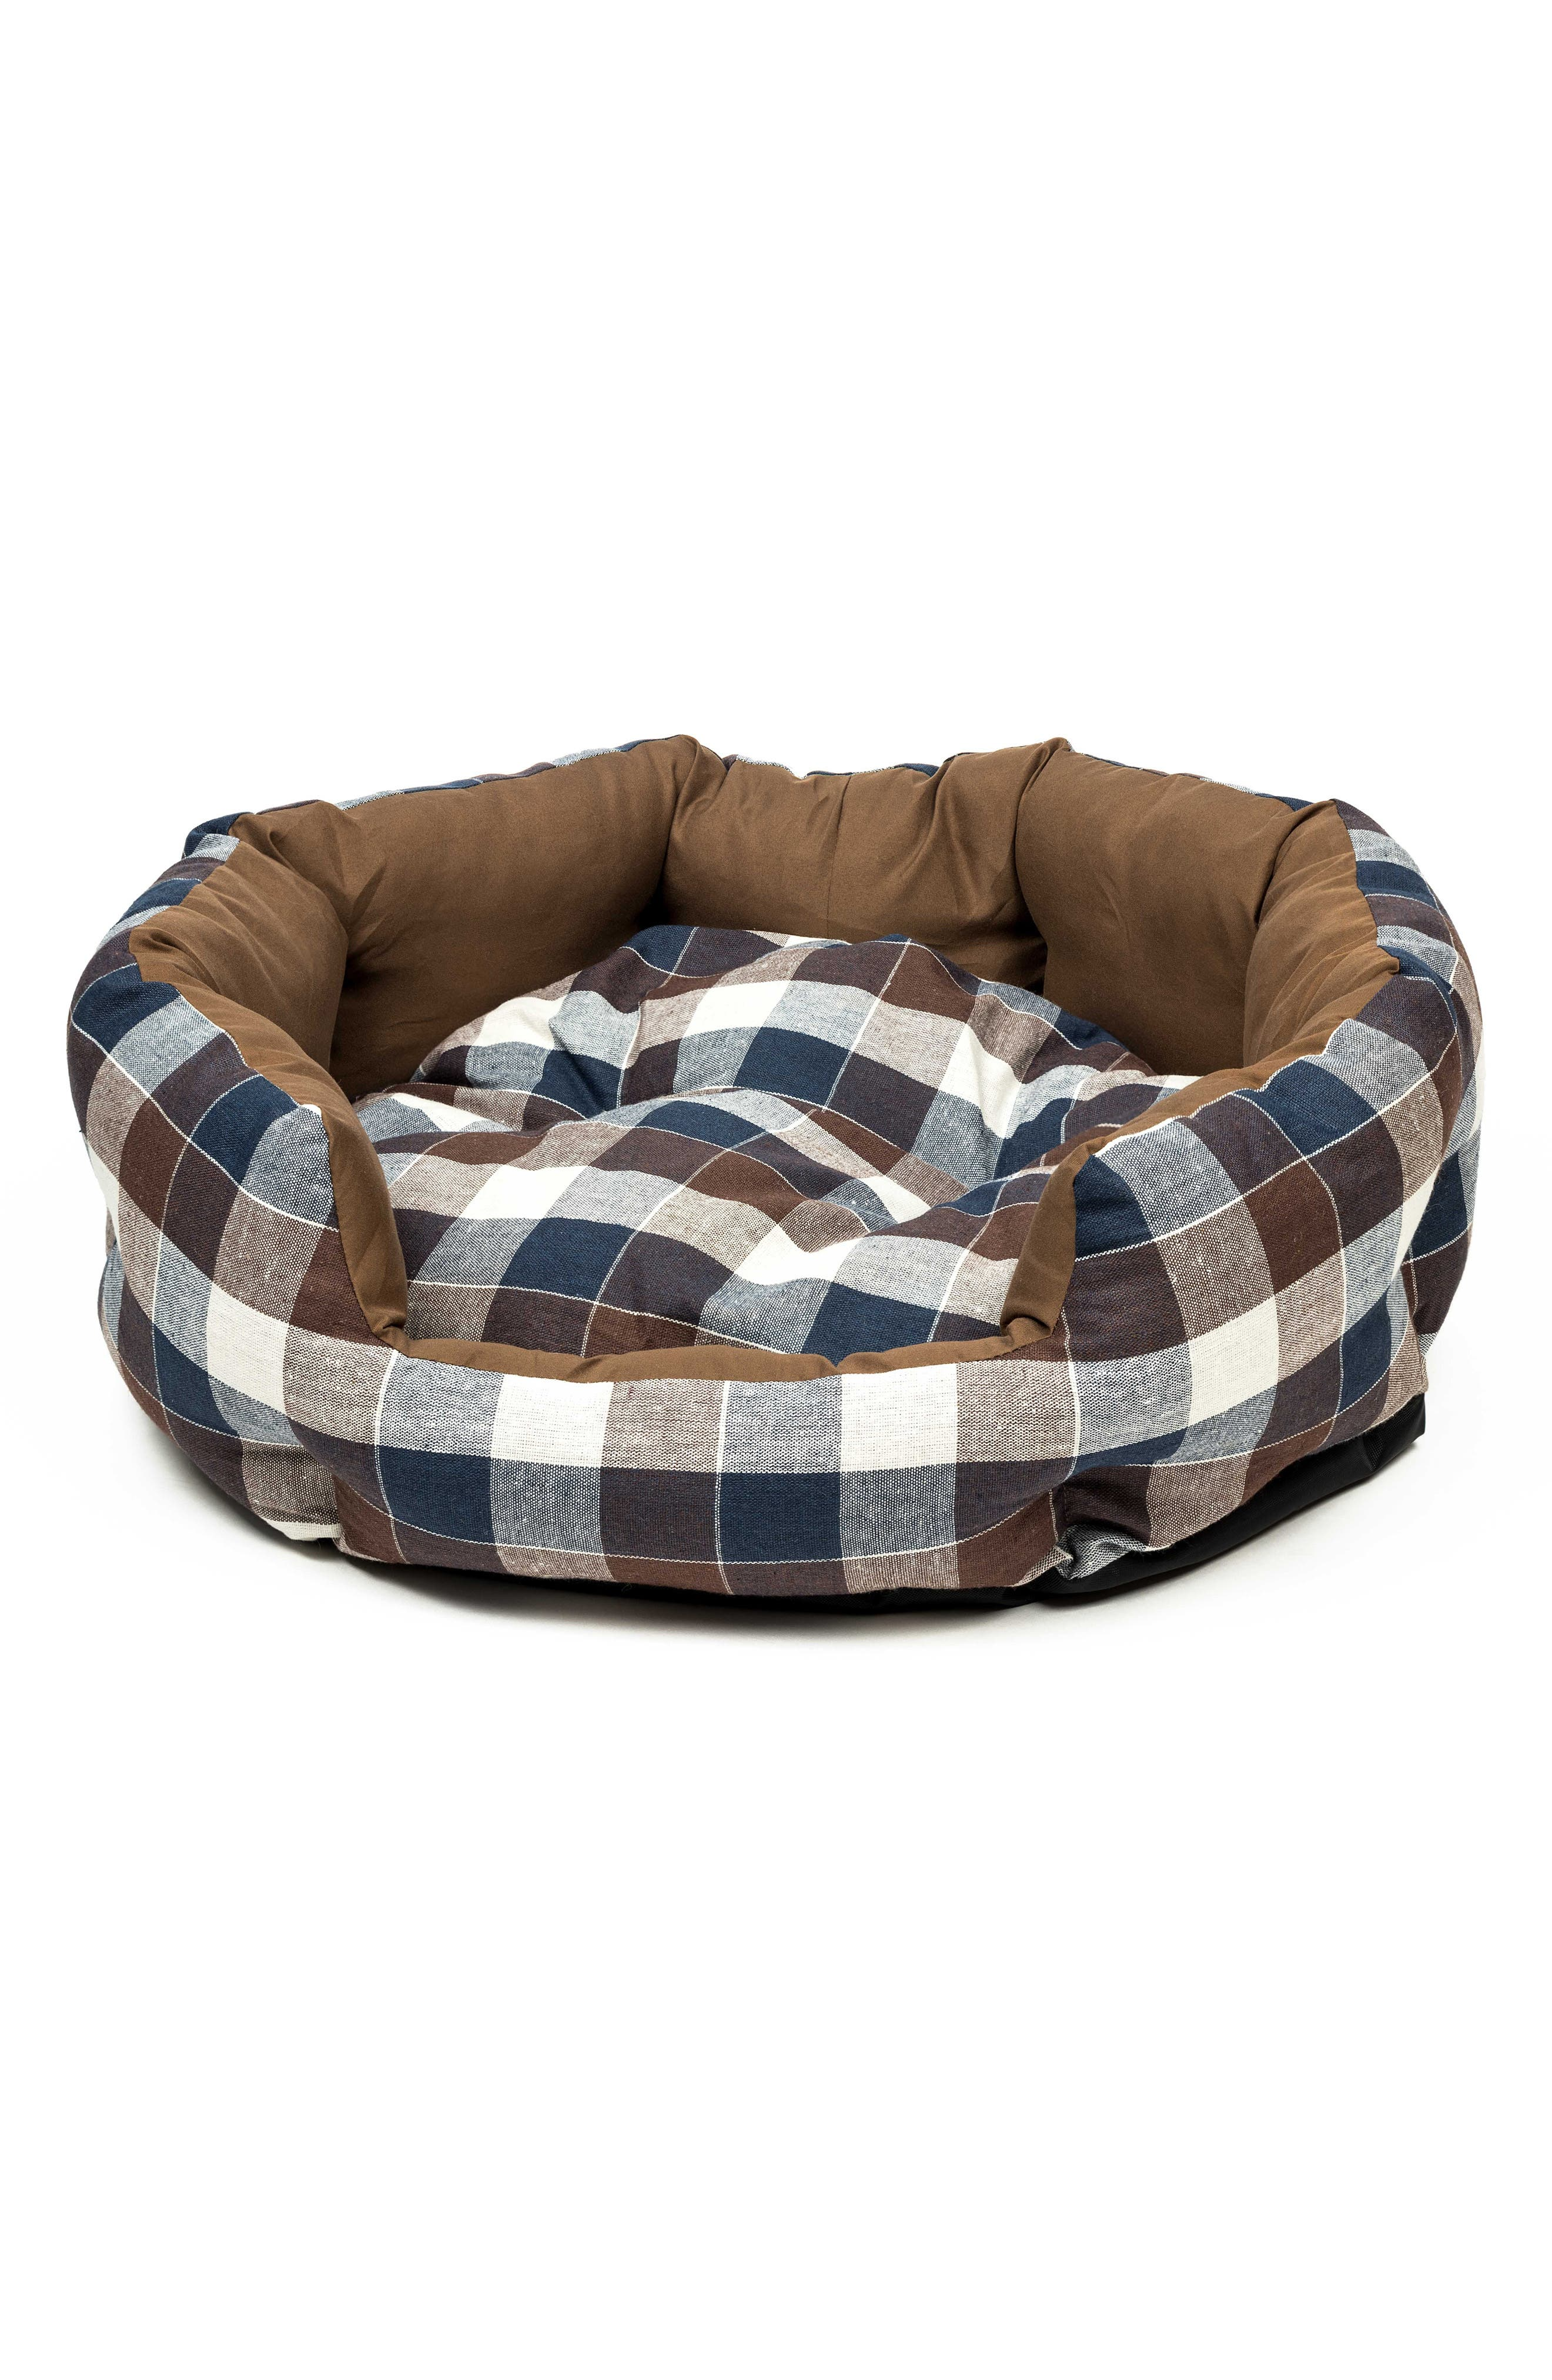 Hasley Round Pet Bed,                             Main thumbnail 1, color,                             CHOCOLATE